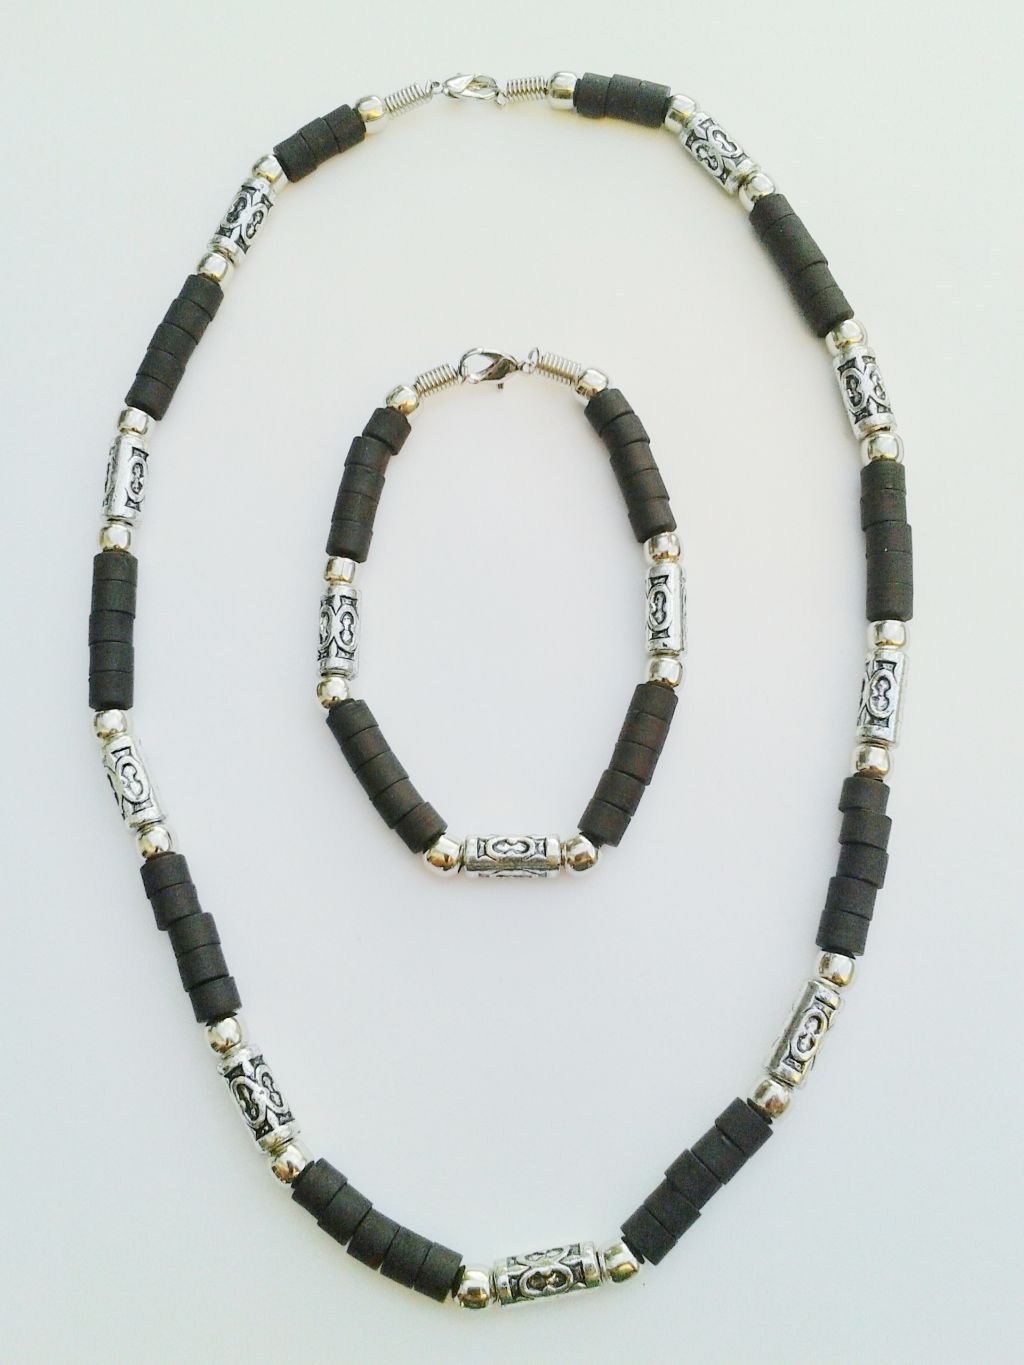 Jamaica Two-Tone Chrome Black Beach Beaded Necklace Bracelet, Surfer Choker Men's Jewelry